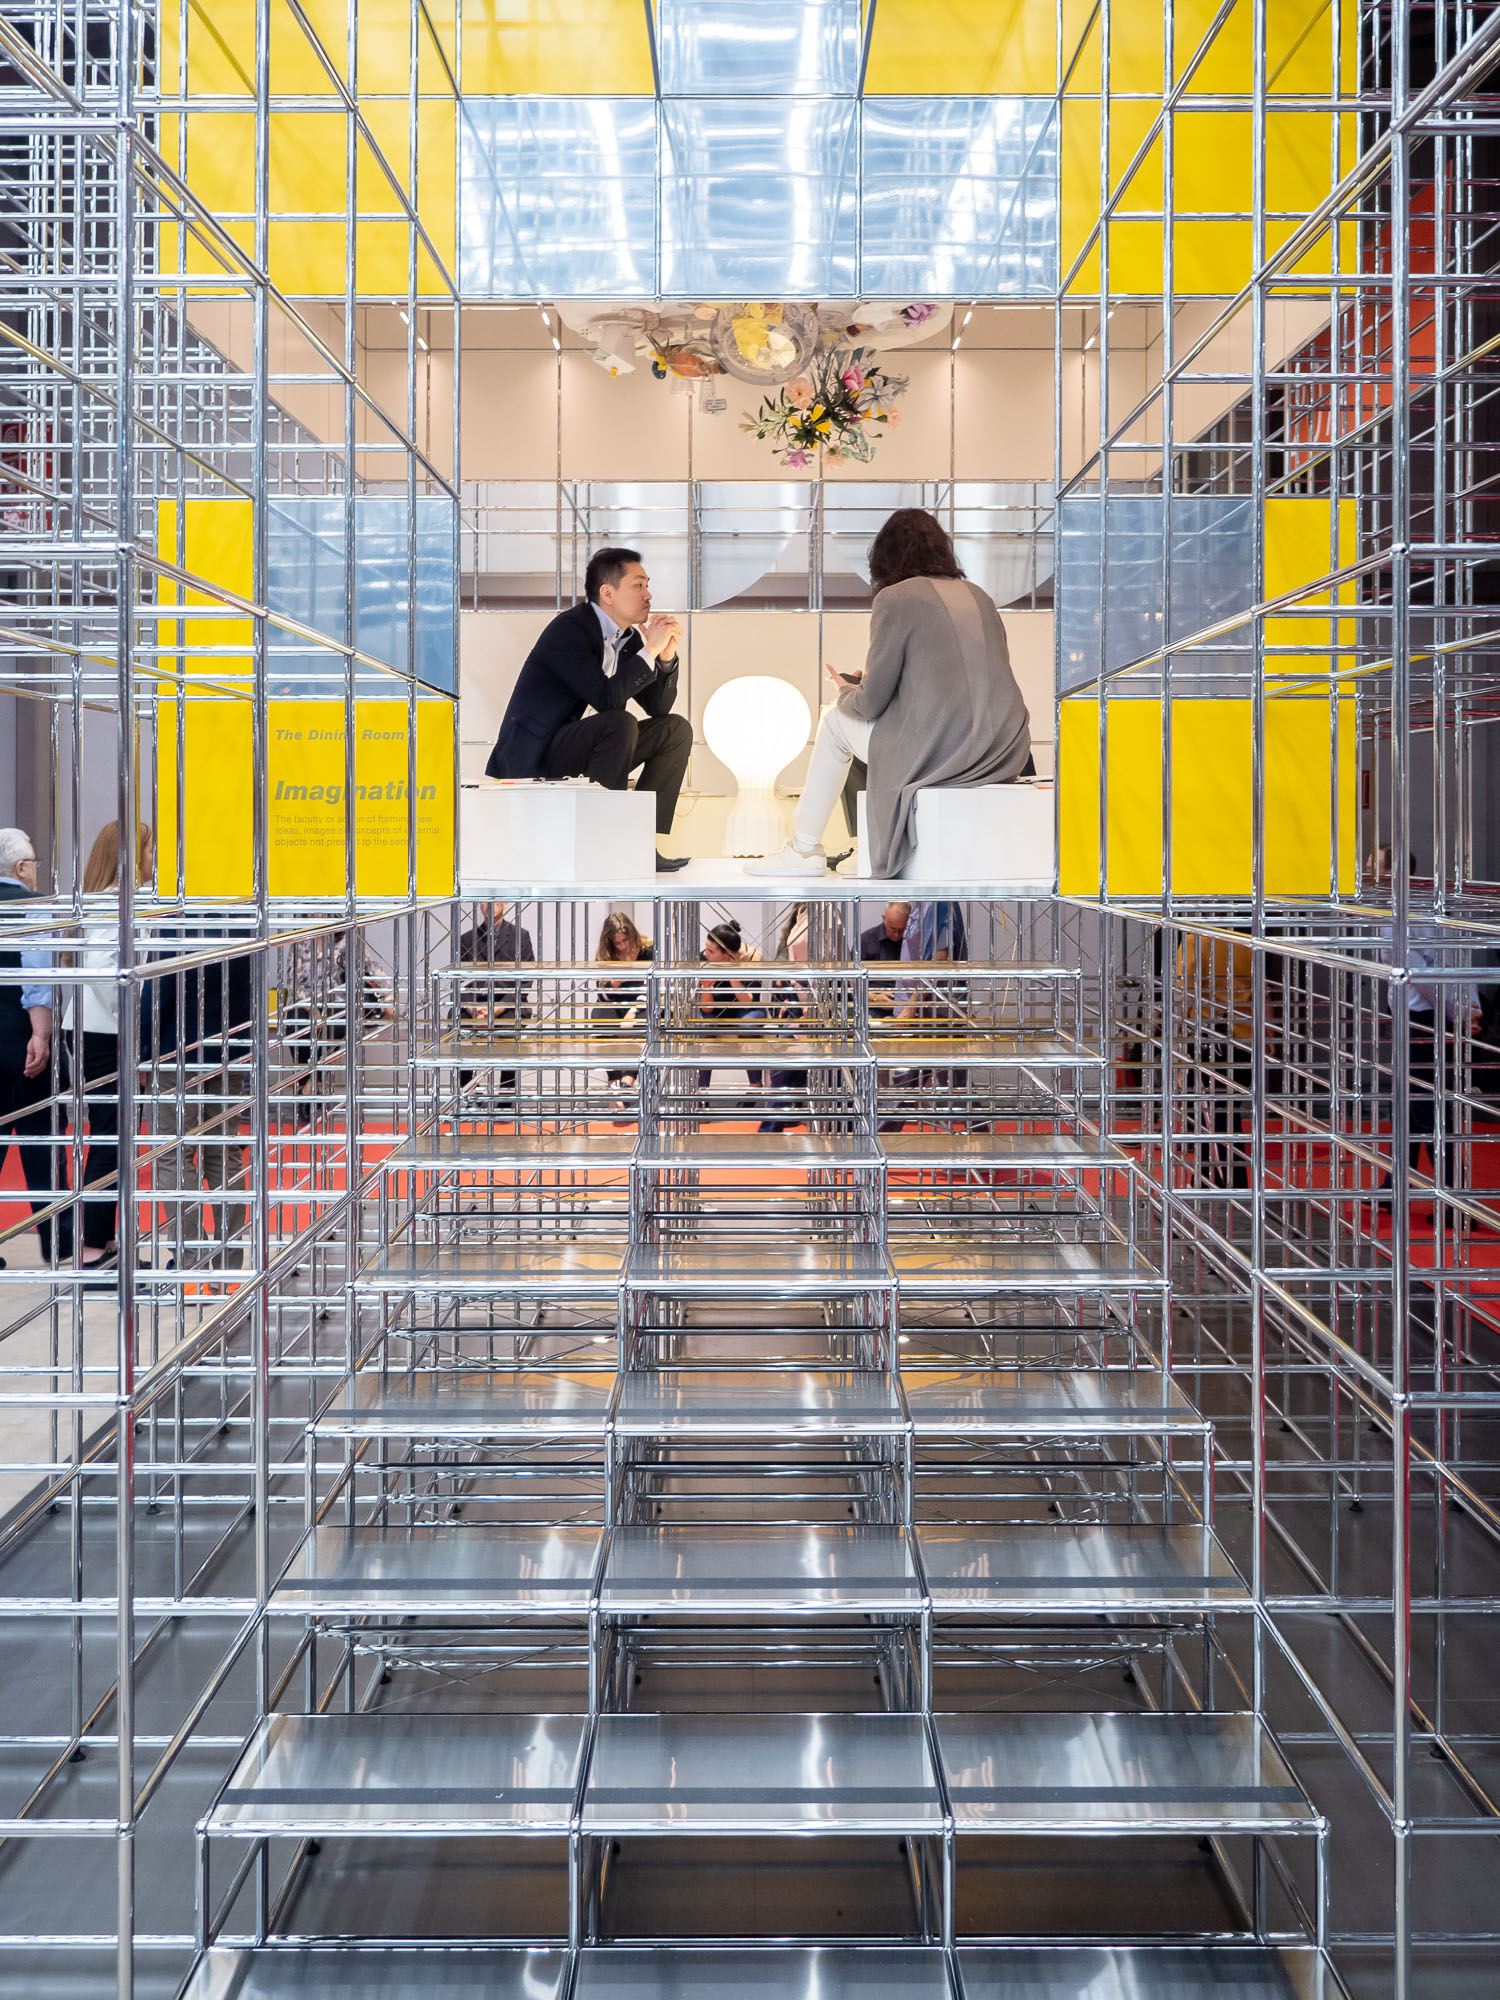 Milan Design Week: onde nacen as tendencias